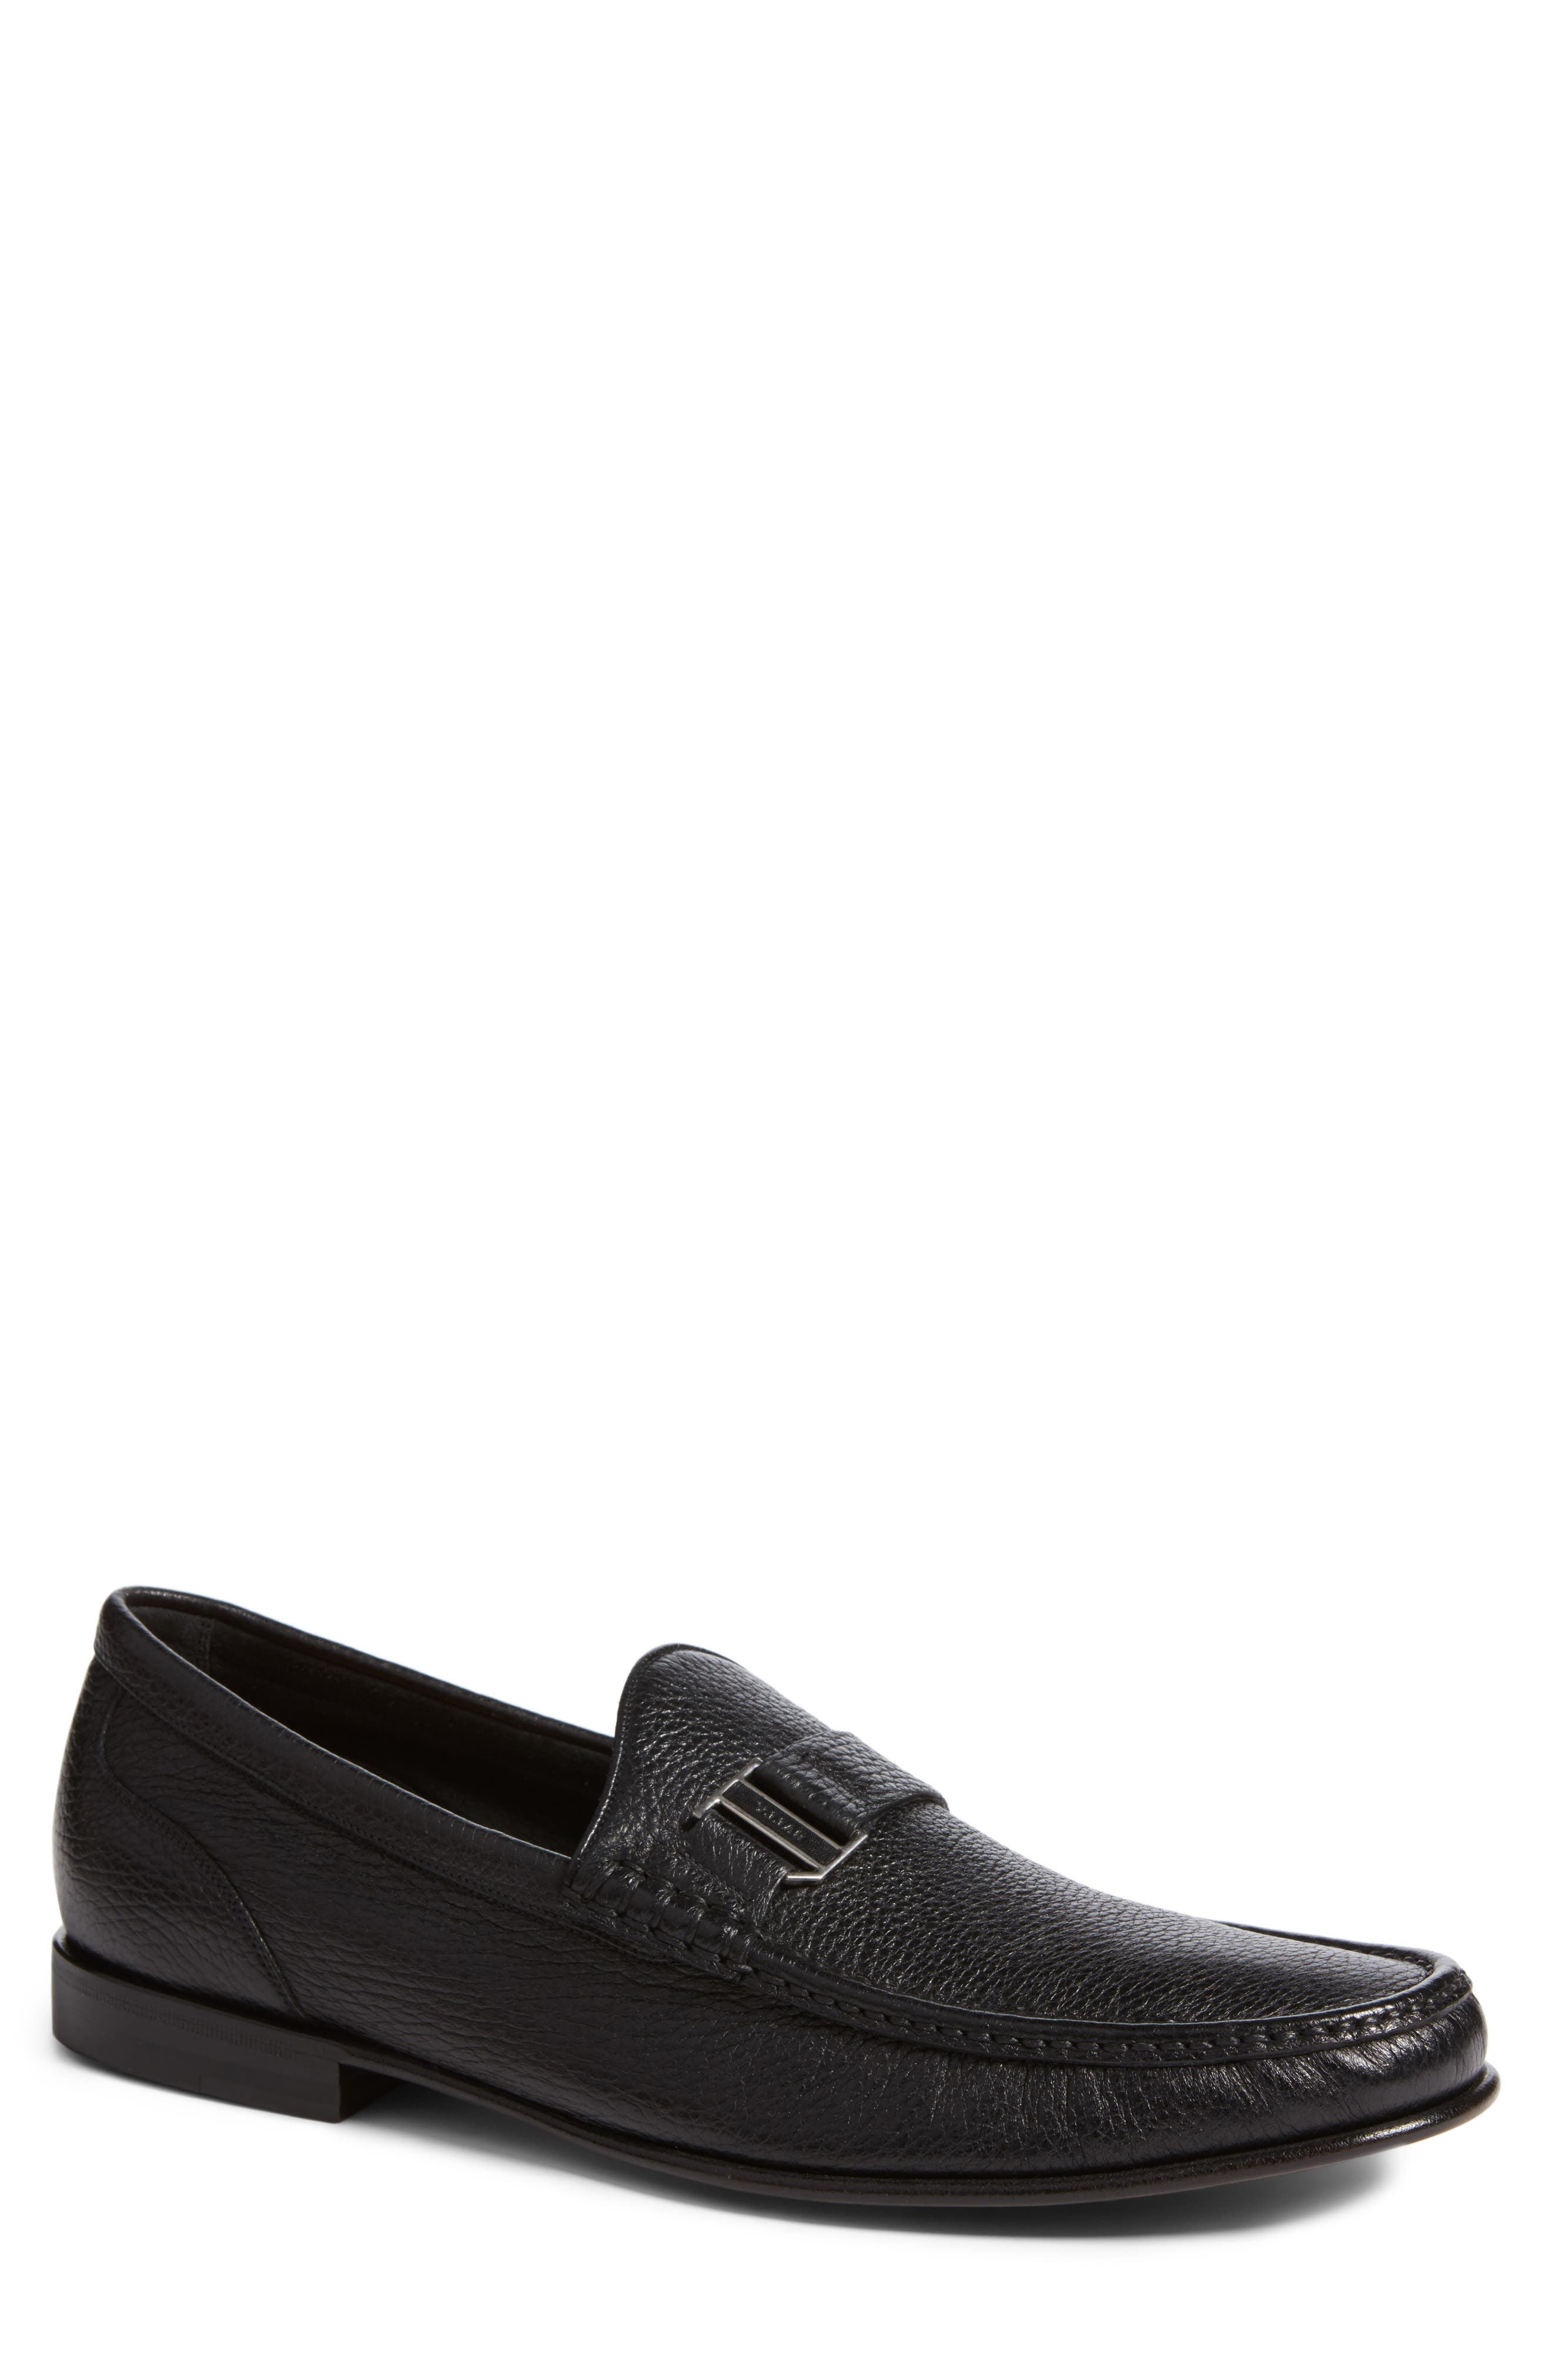 Suver Loafer,                         Main,                         color, 001